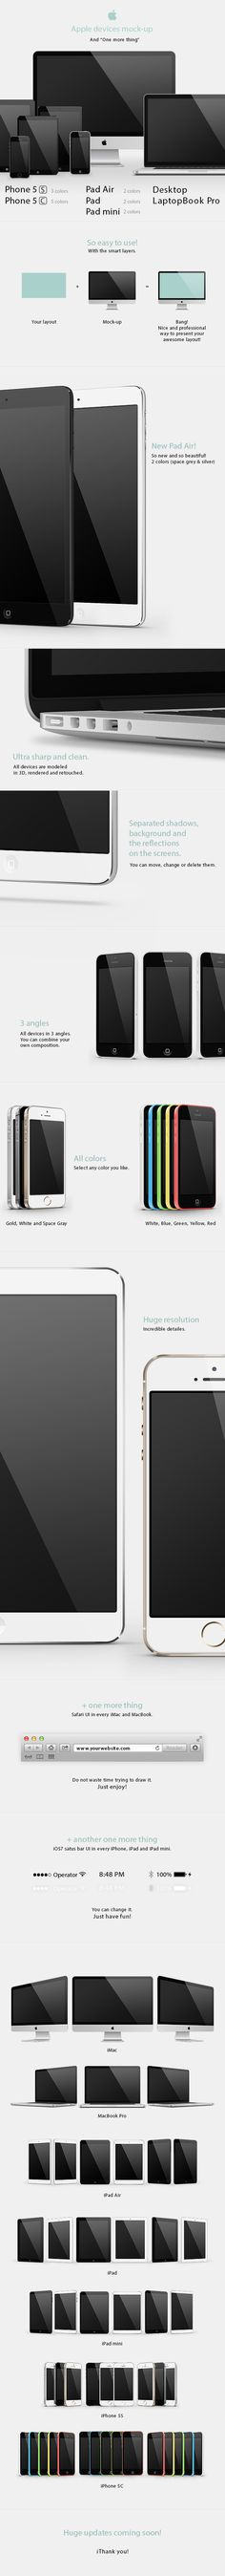 Apple devices mock-up on Behance